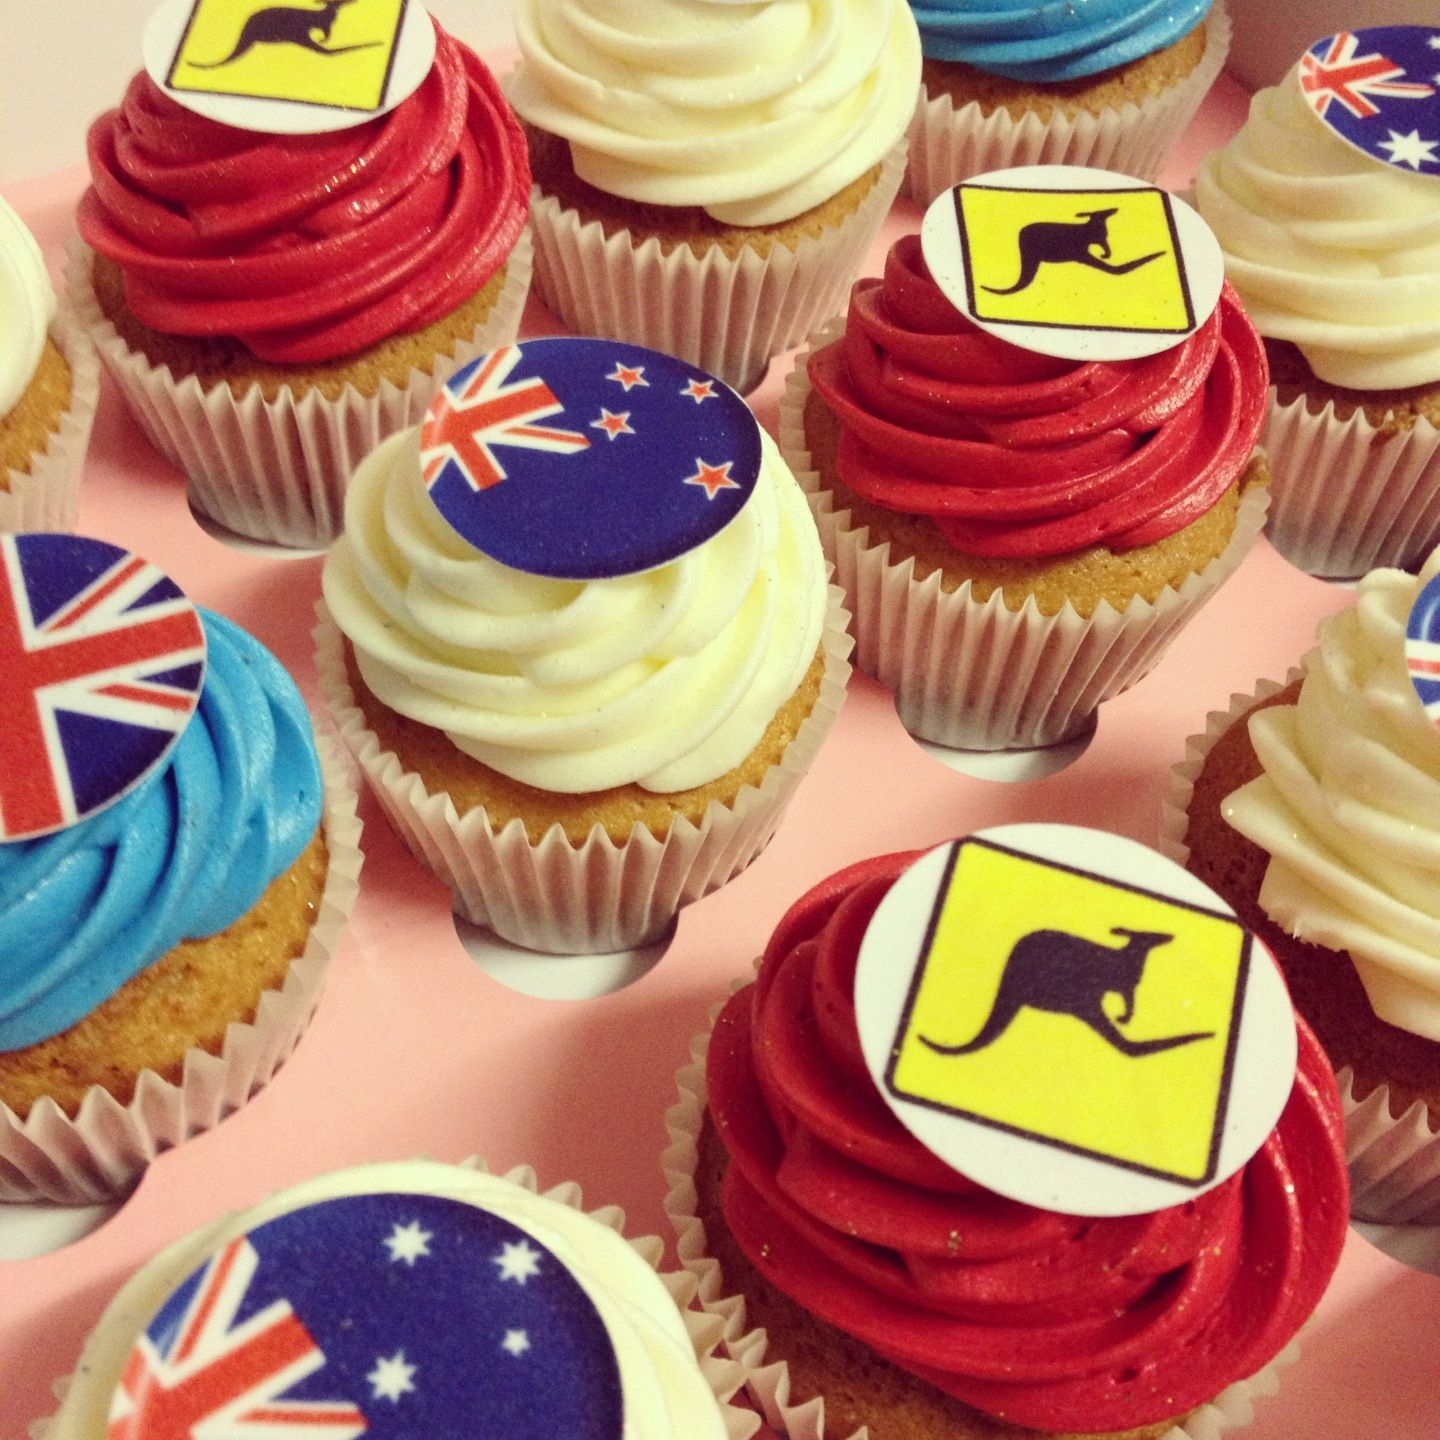 Welcome Home Cupcakes Australia New Zealand and British themed